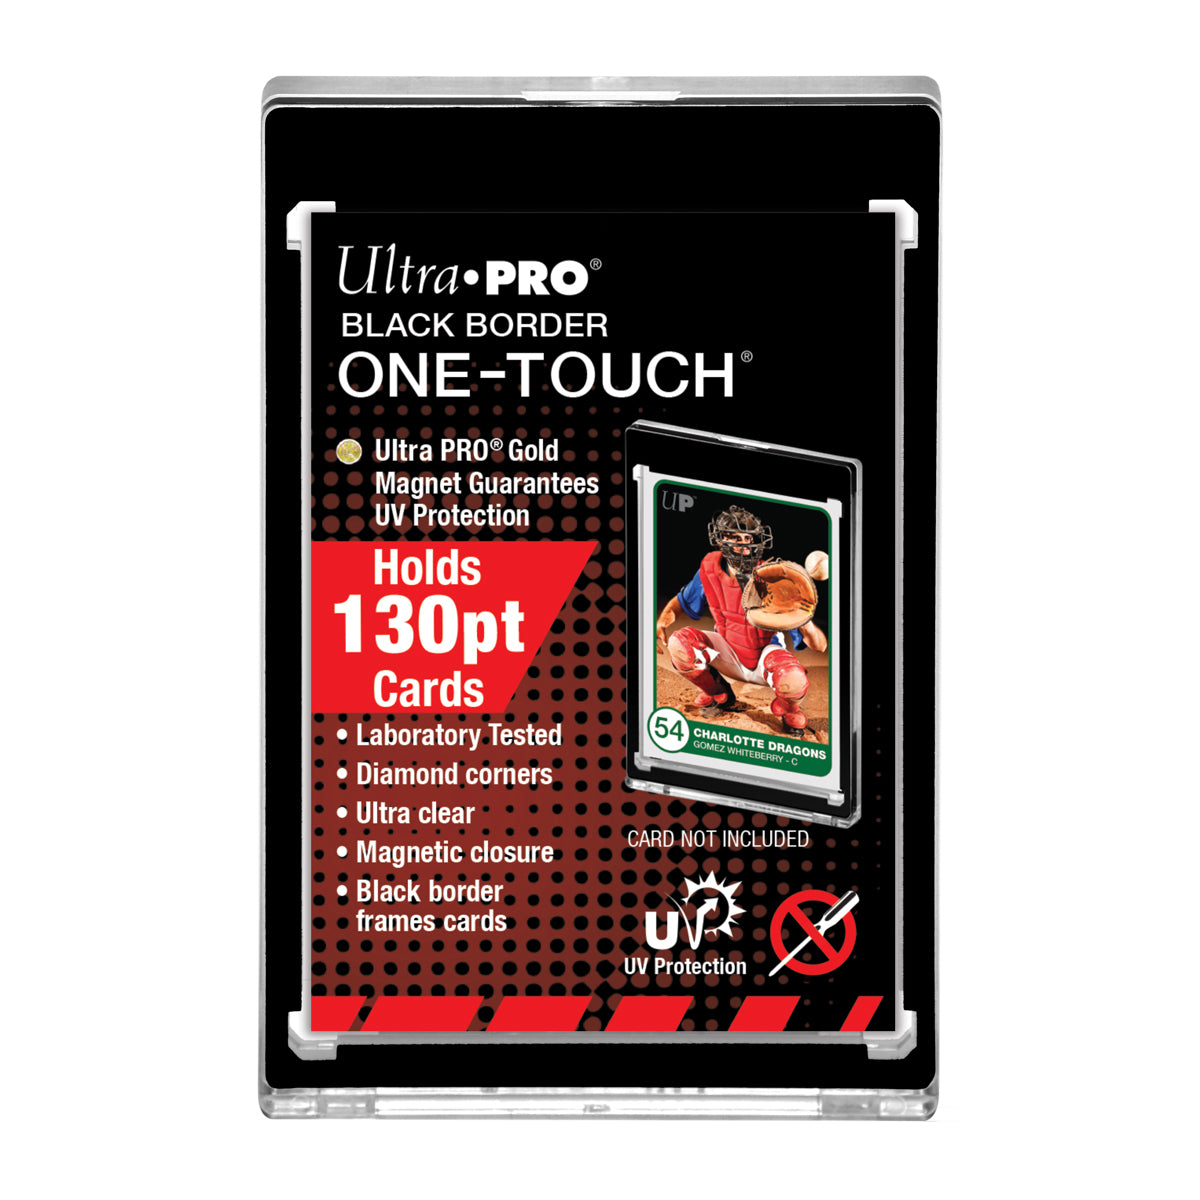 130pt Black Border One Touch Magnetic